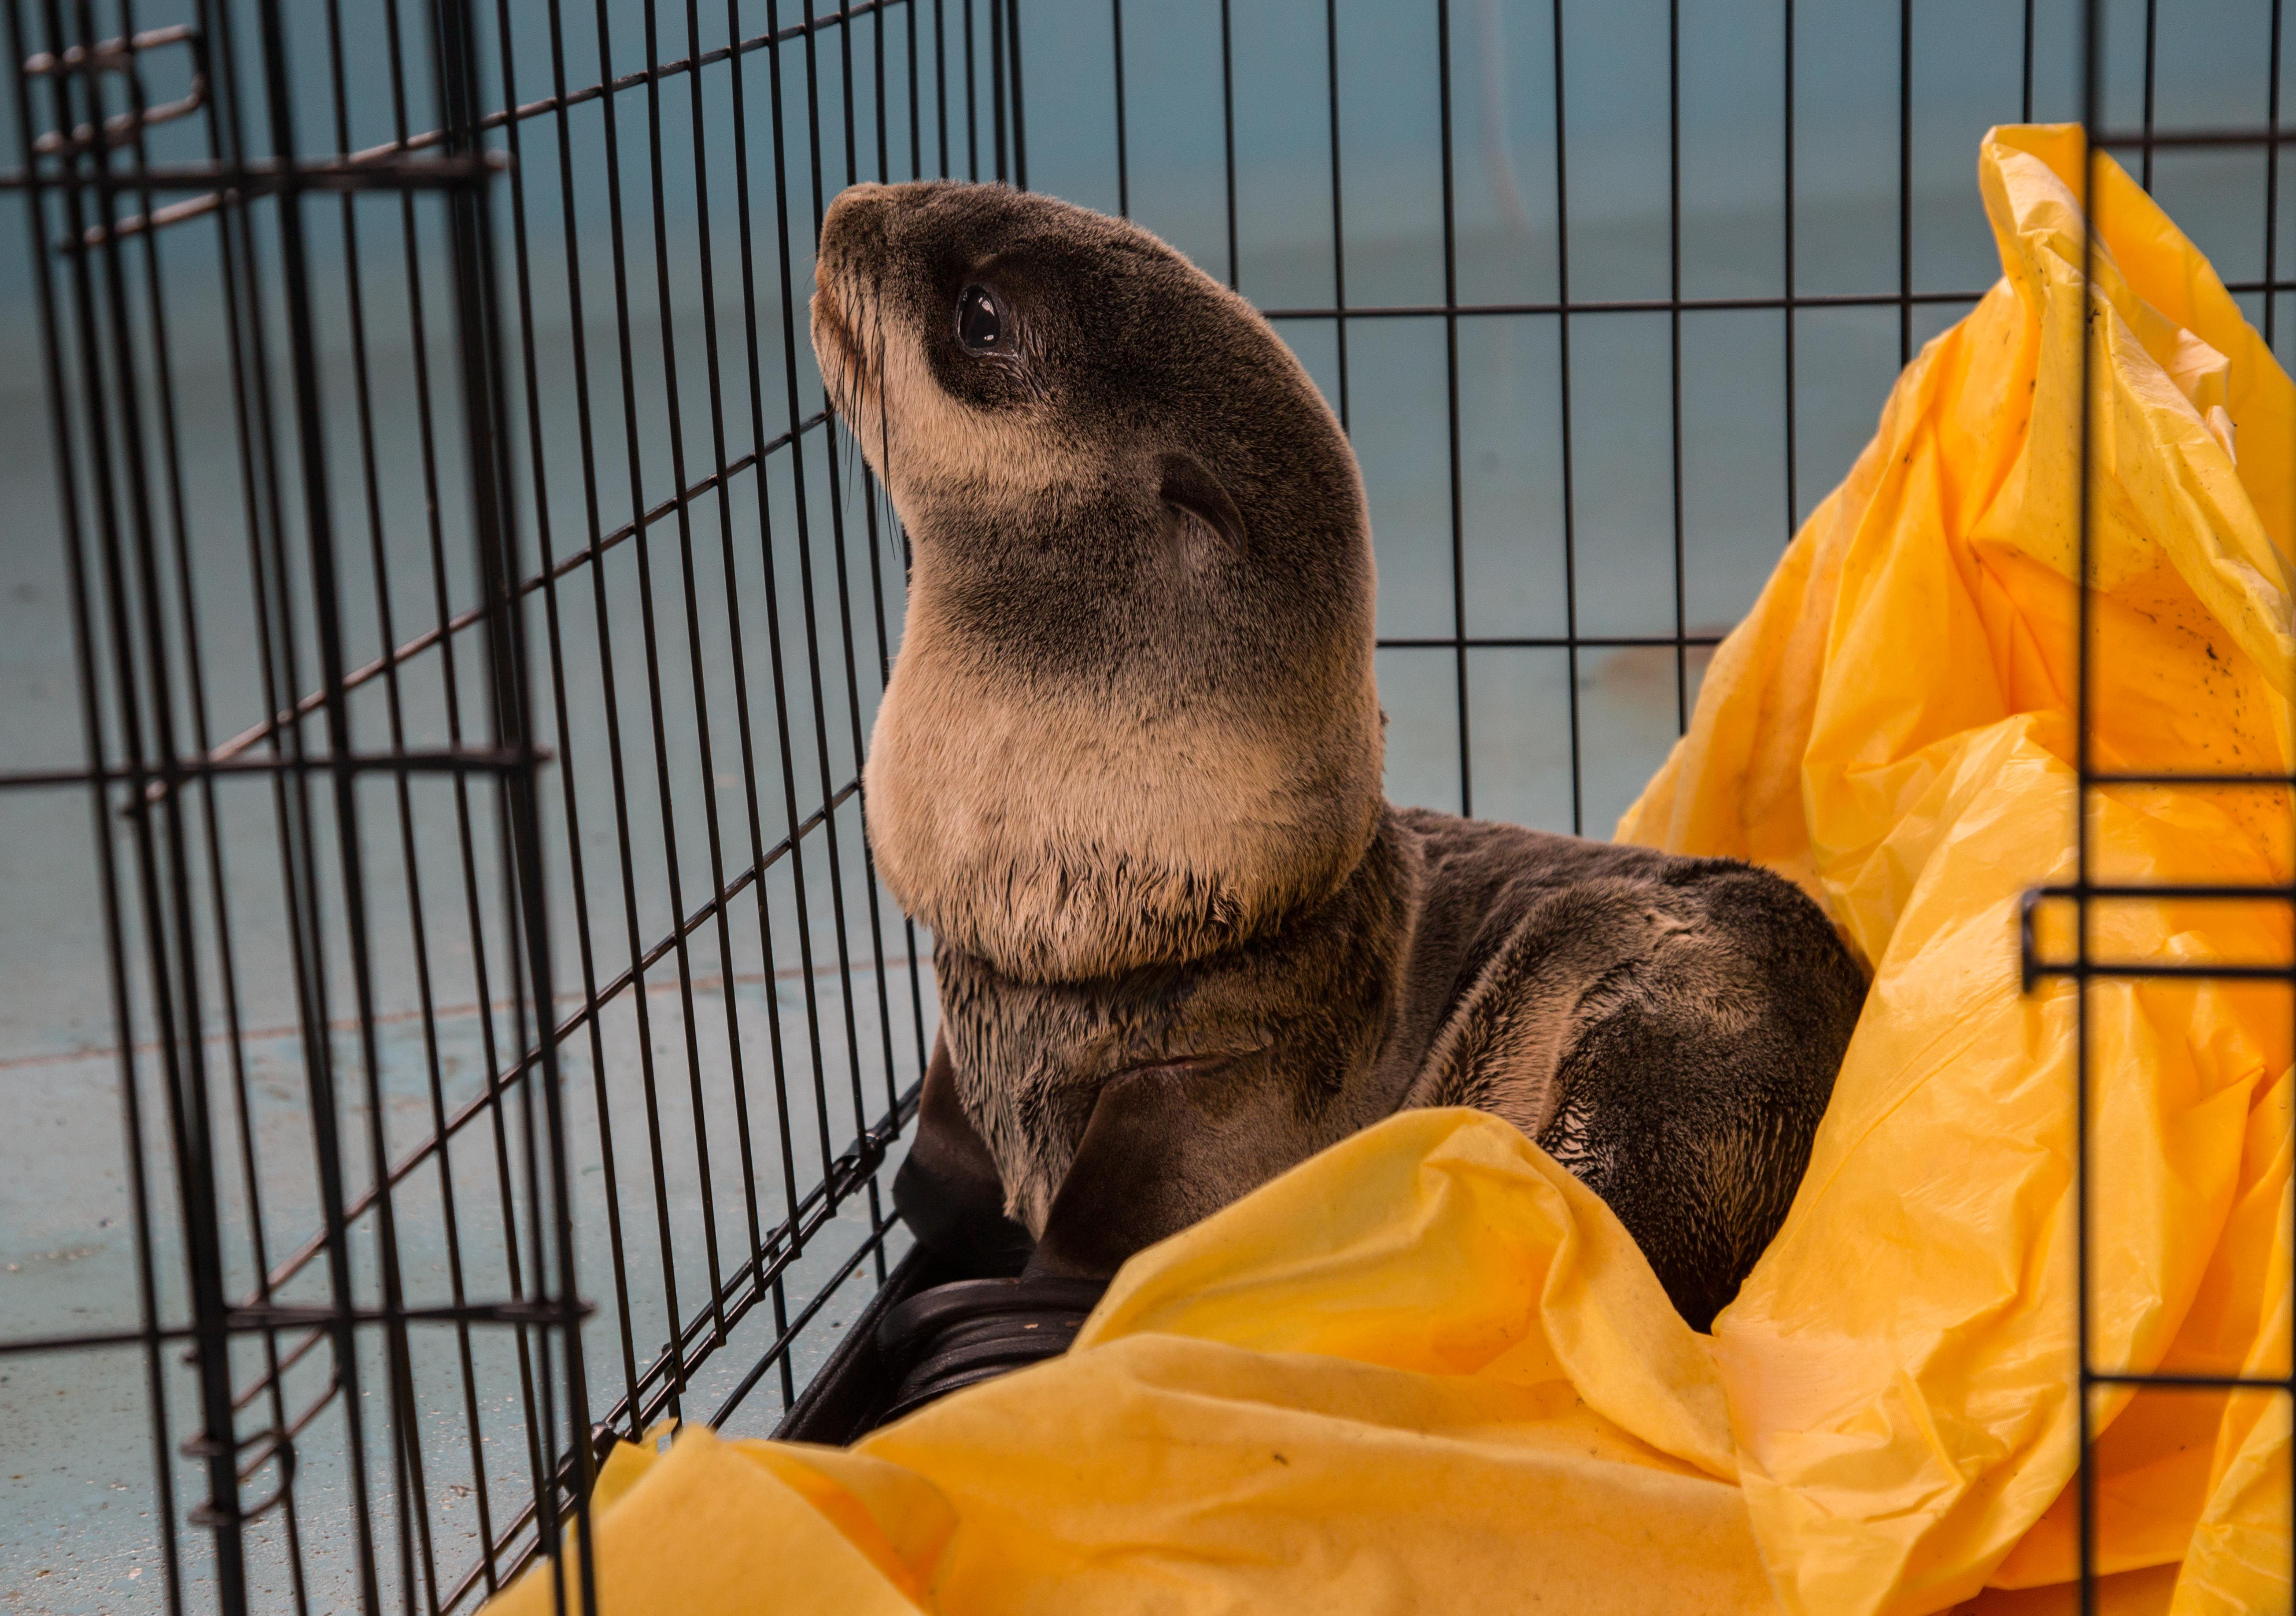 "The injury is not unfamiliar to the Oregon Marine Mammal Stranding Network, with which Jim Rice also works. ""When people release balloons into the air, they often end up in the ocean. Then the string potentially becomes entanglement to marine life,"" he said. ""The OMMSN sees this situation often. We don't get an awful lot of live fur seals, but we do see dead entangled animals regularly. This guy is lucky."" (Oregon Coast Aquarium)"